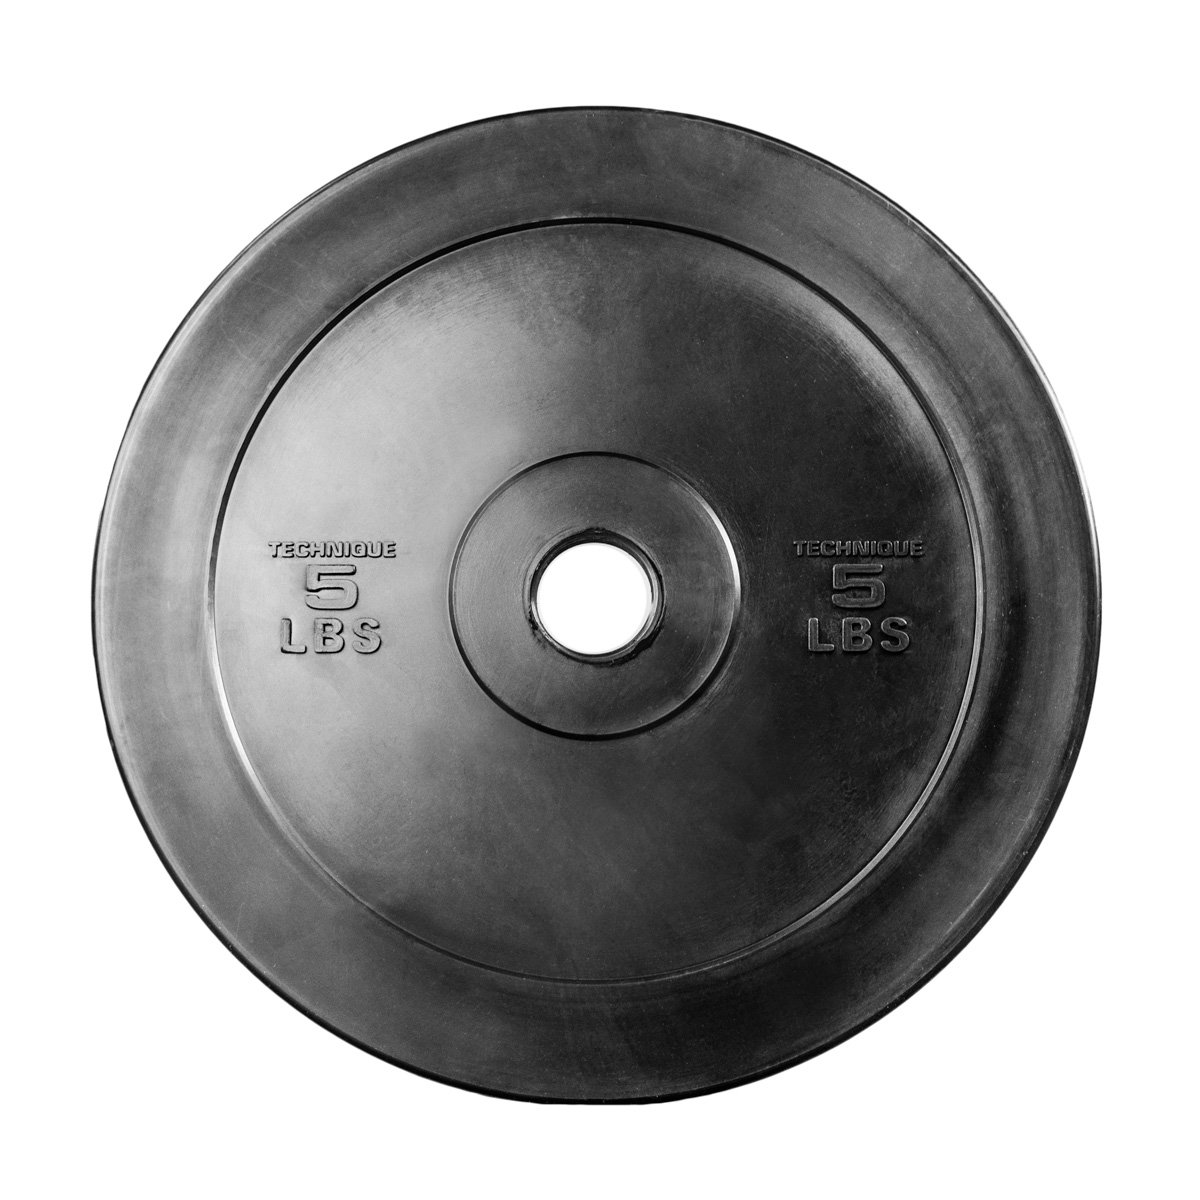 Rep Technique Plates for Strength and Conditioning Workouts and Weightlifting 5 lb Pair by Rep Fitness (Image #2)